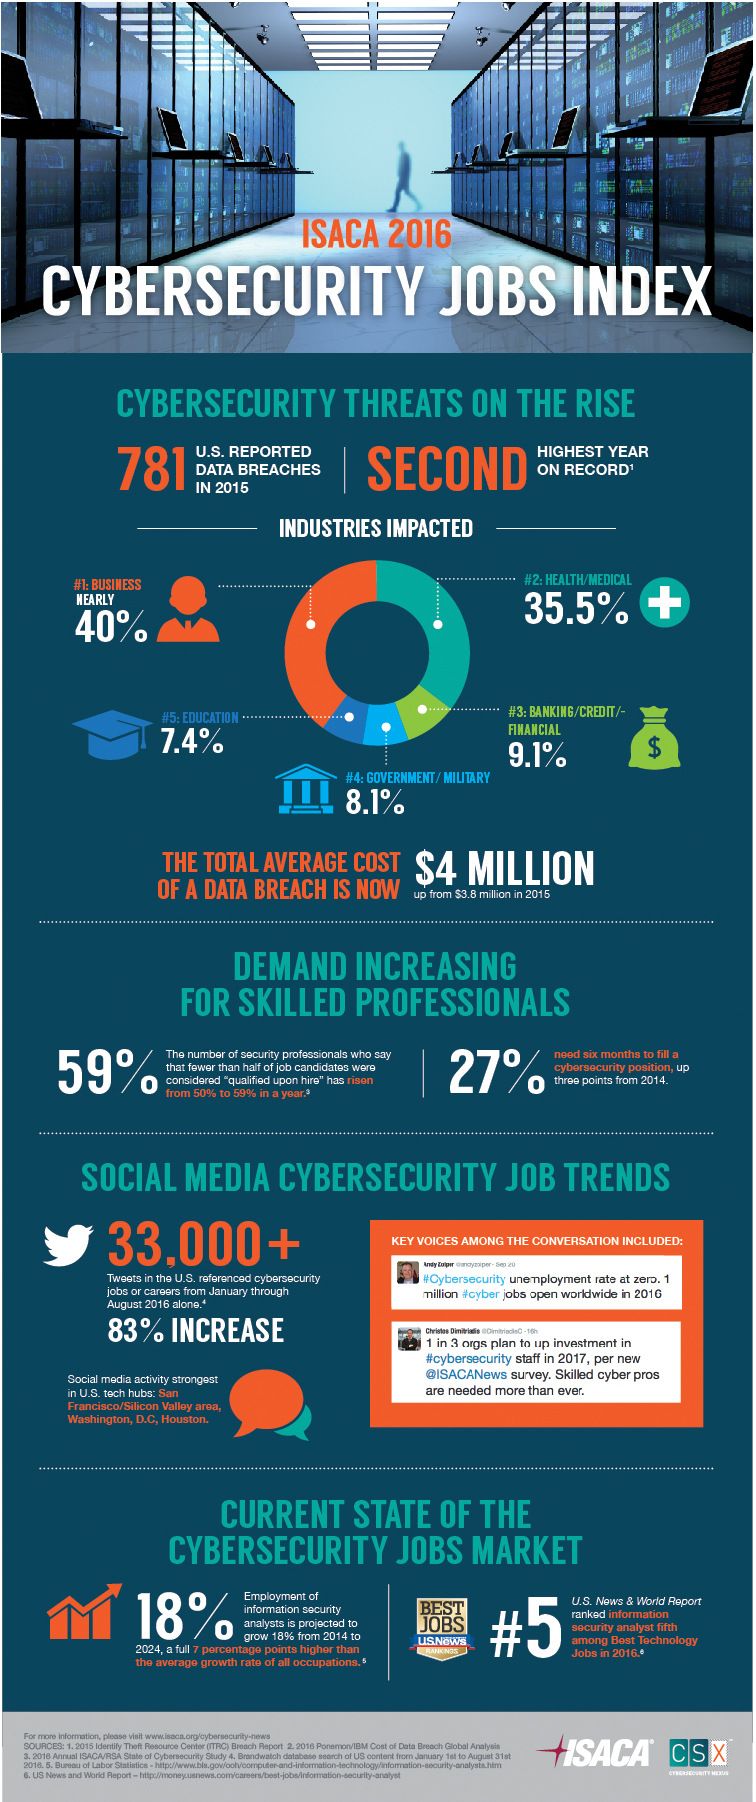 cybersecurity jobs index highlights growing skills gap